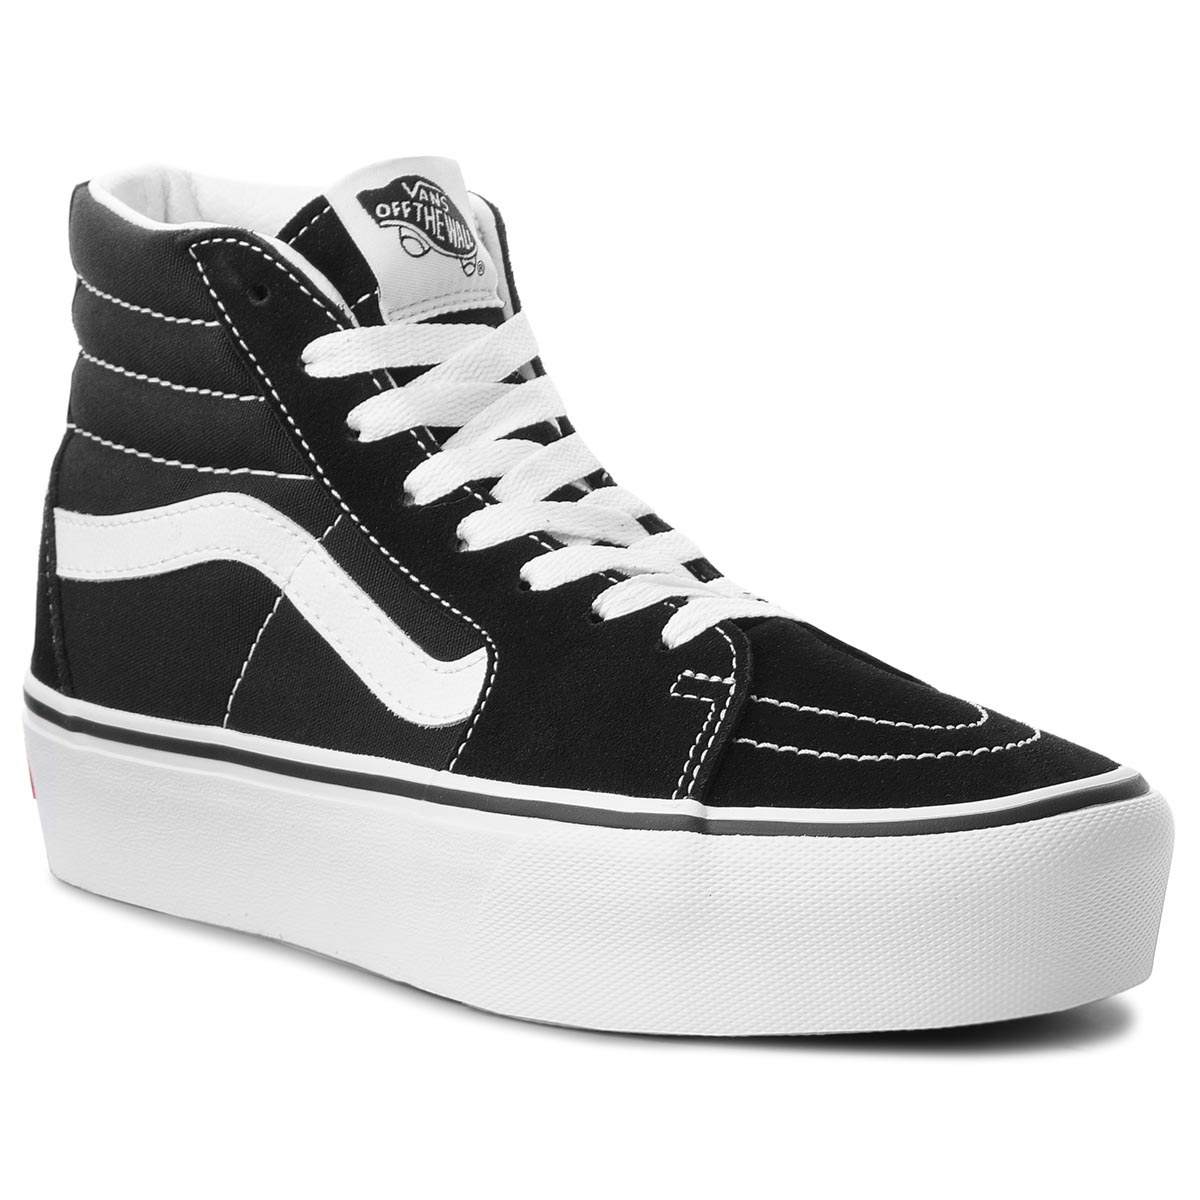 Sneakers VANS - Sk8-Hi Platform 2 VN0A3TKN6BT Black/True White